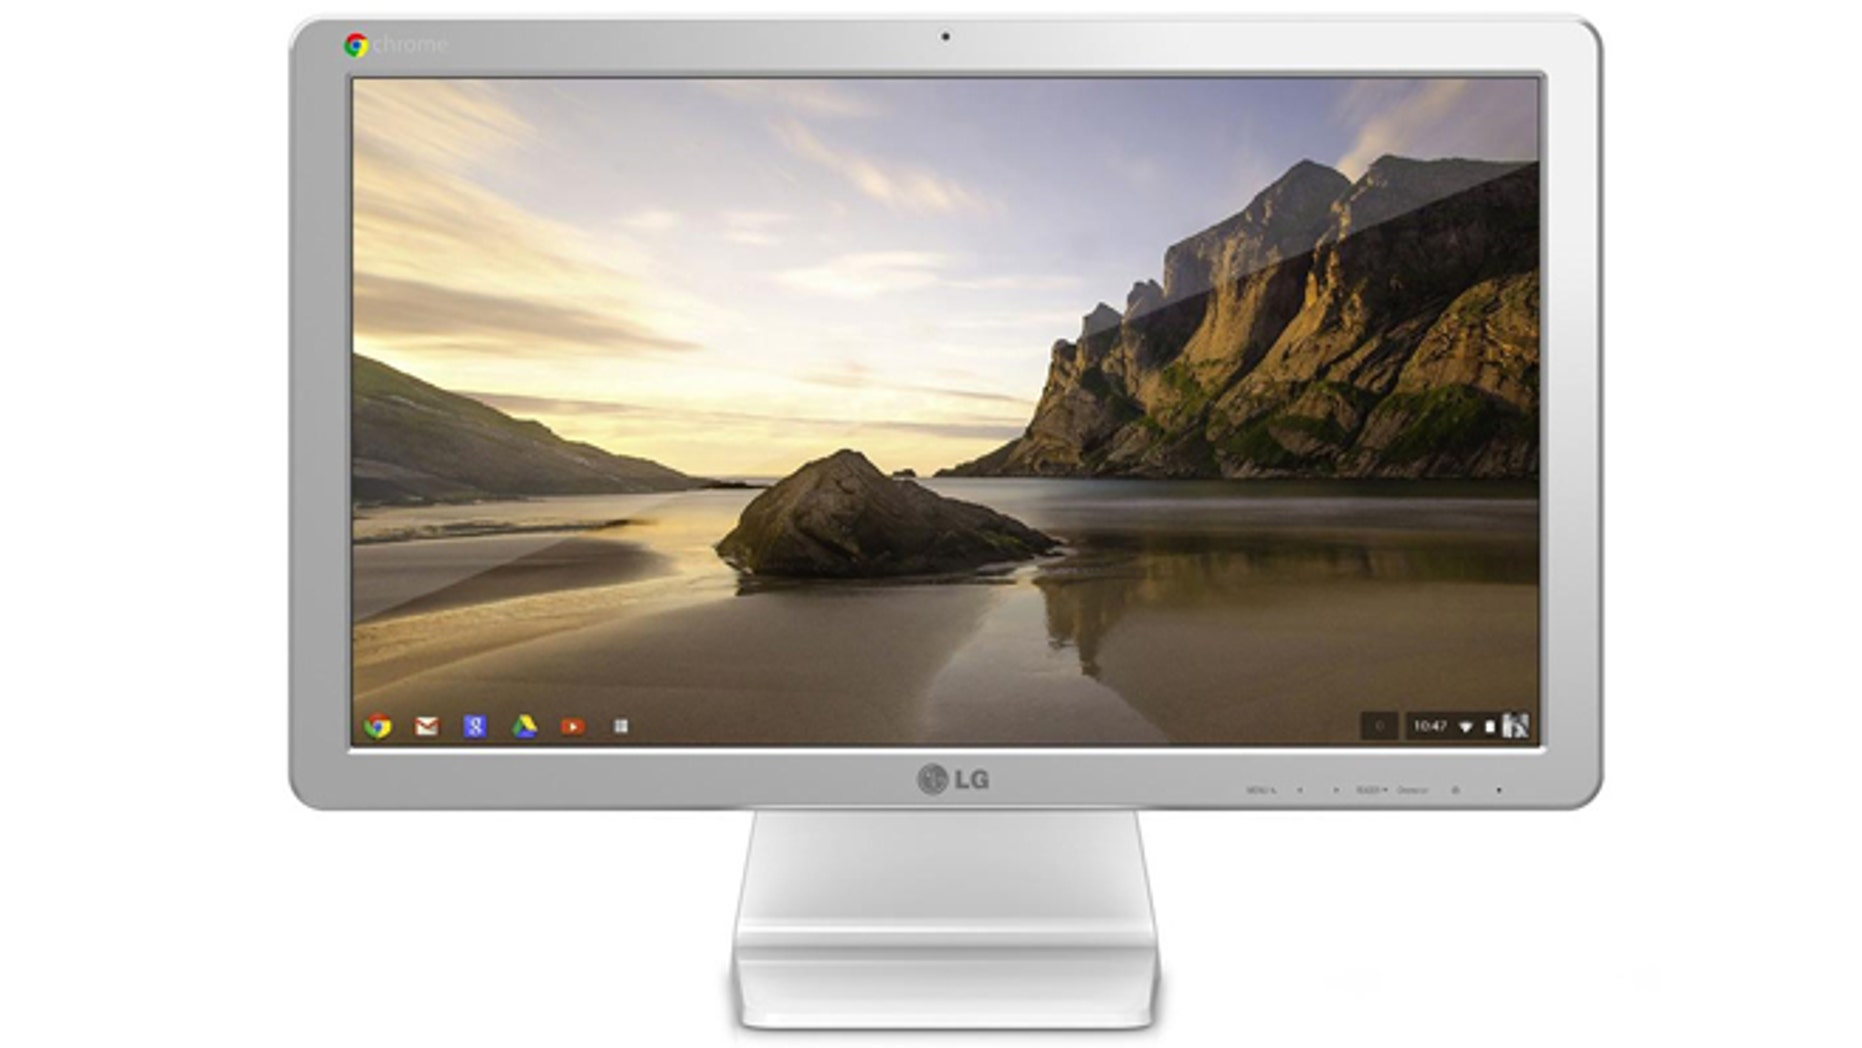 The LG Chromebase, an all-in-one computer running Google's Chrome operating system, rather than the traditional Windows. It's one of an increasing variety of threats to Microsoft's dominance on the desktop.